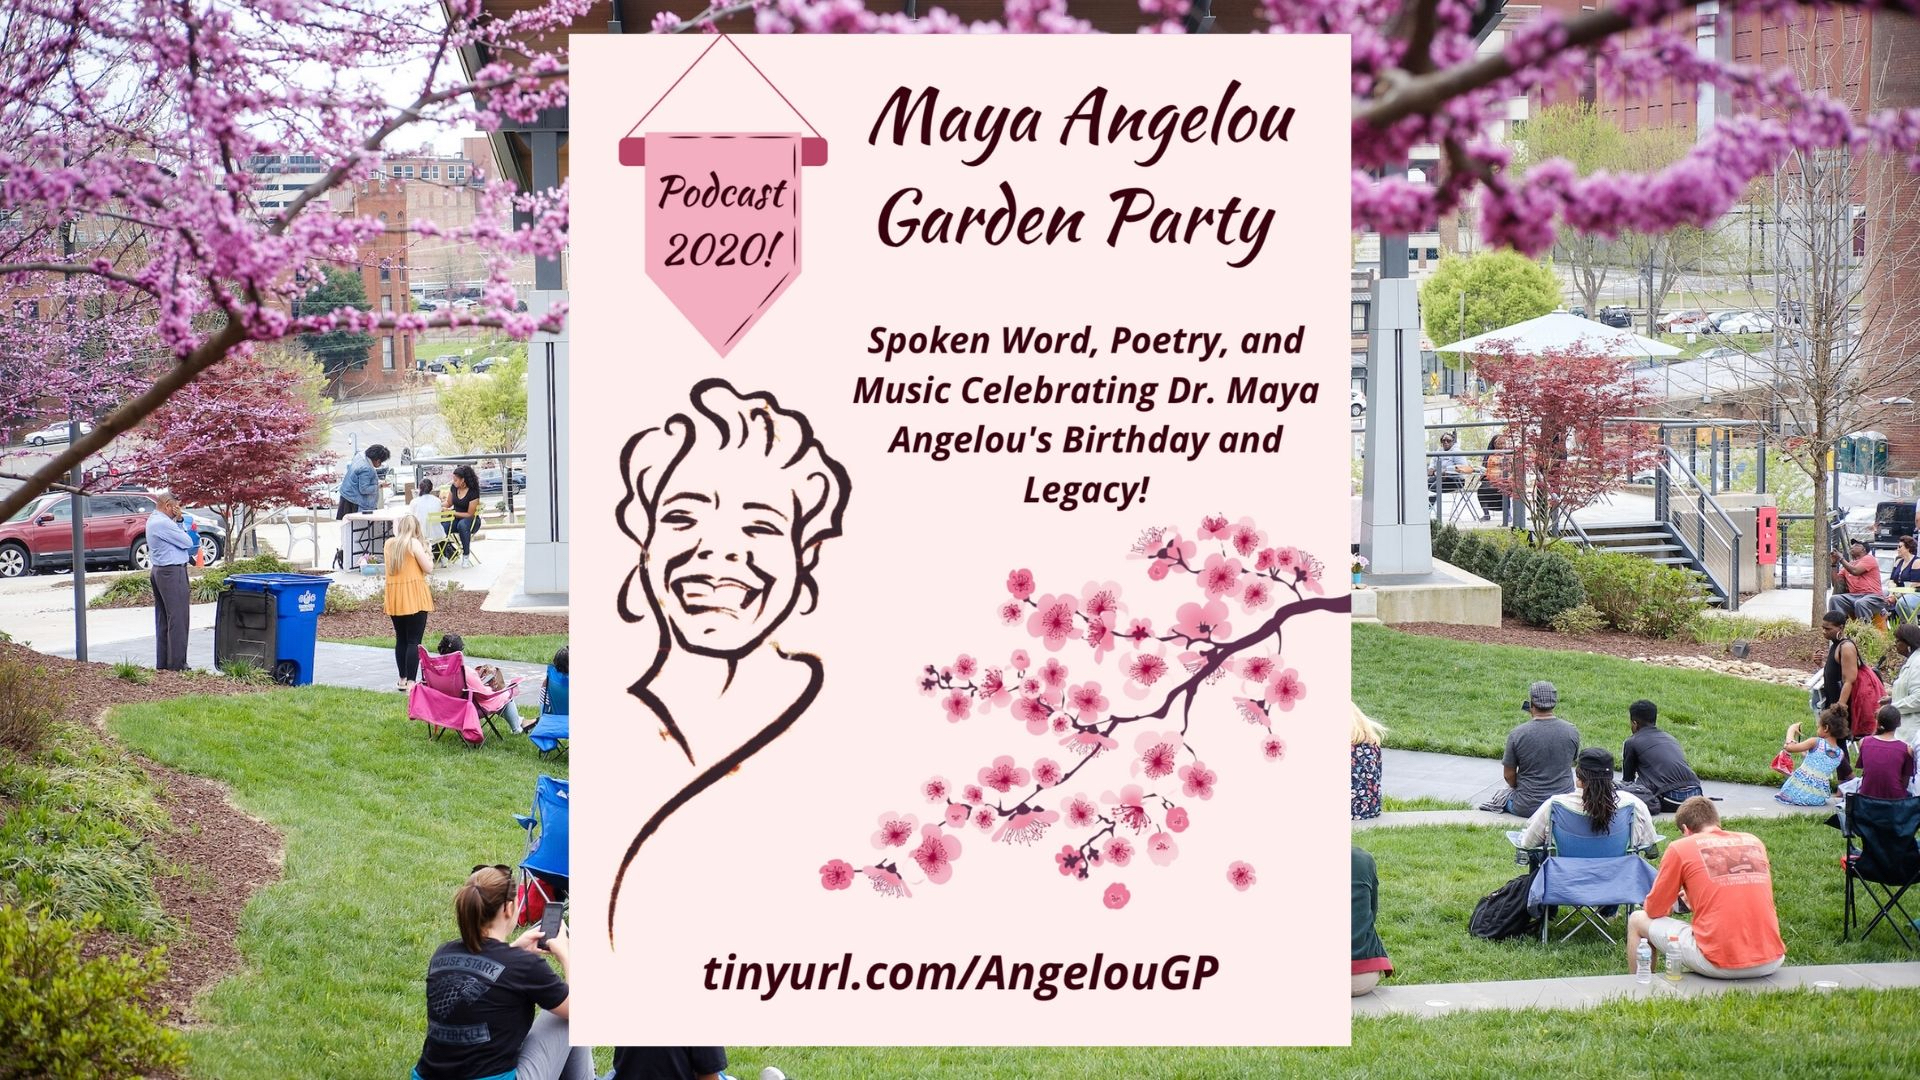 Maya Angelou Garden Party Podcast Flyer